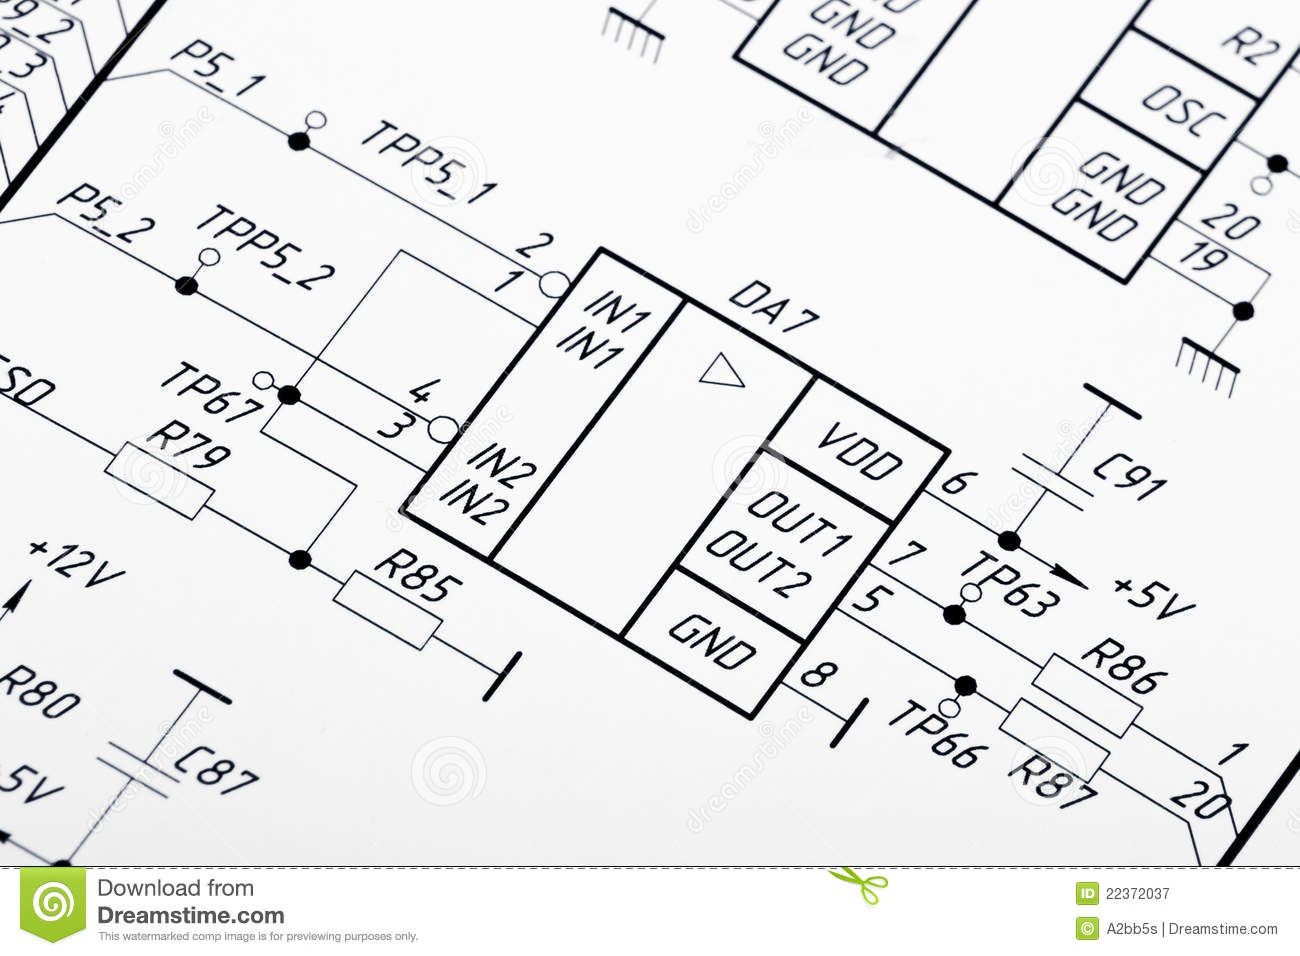 Drawing Of Electrical Circuits Royalty Free Stock